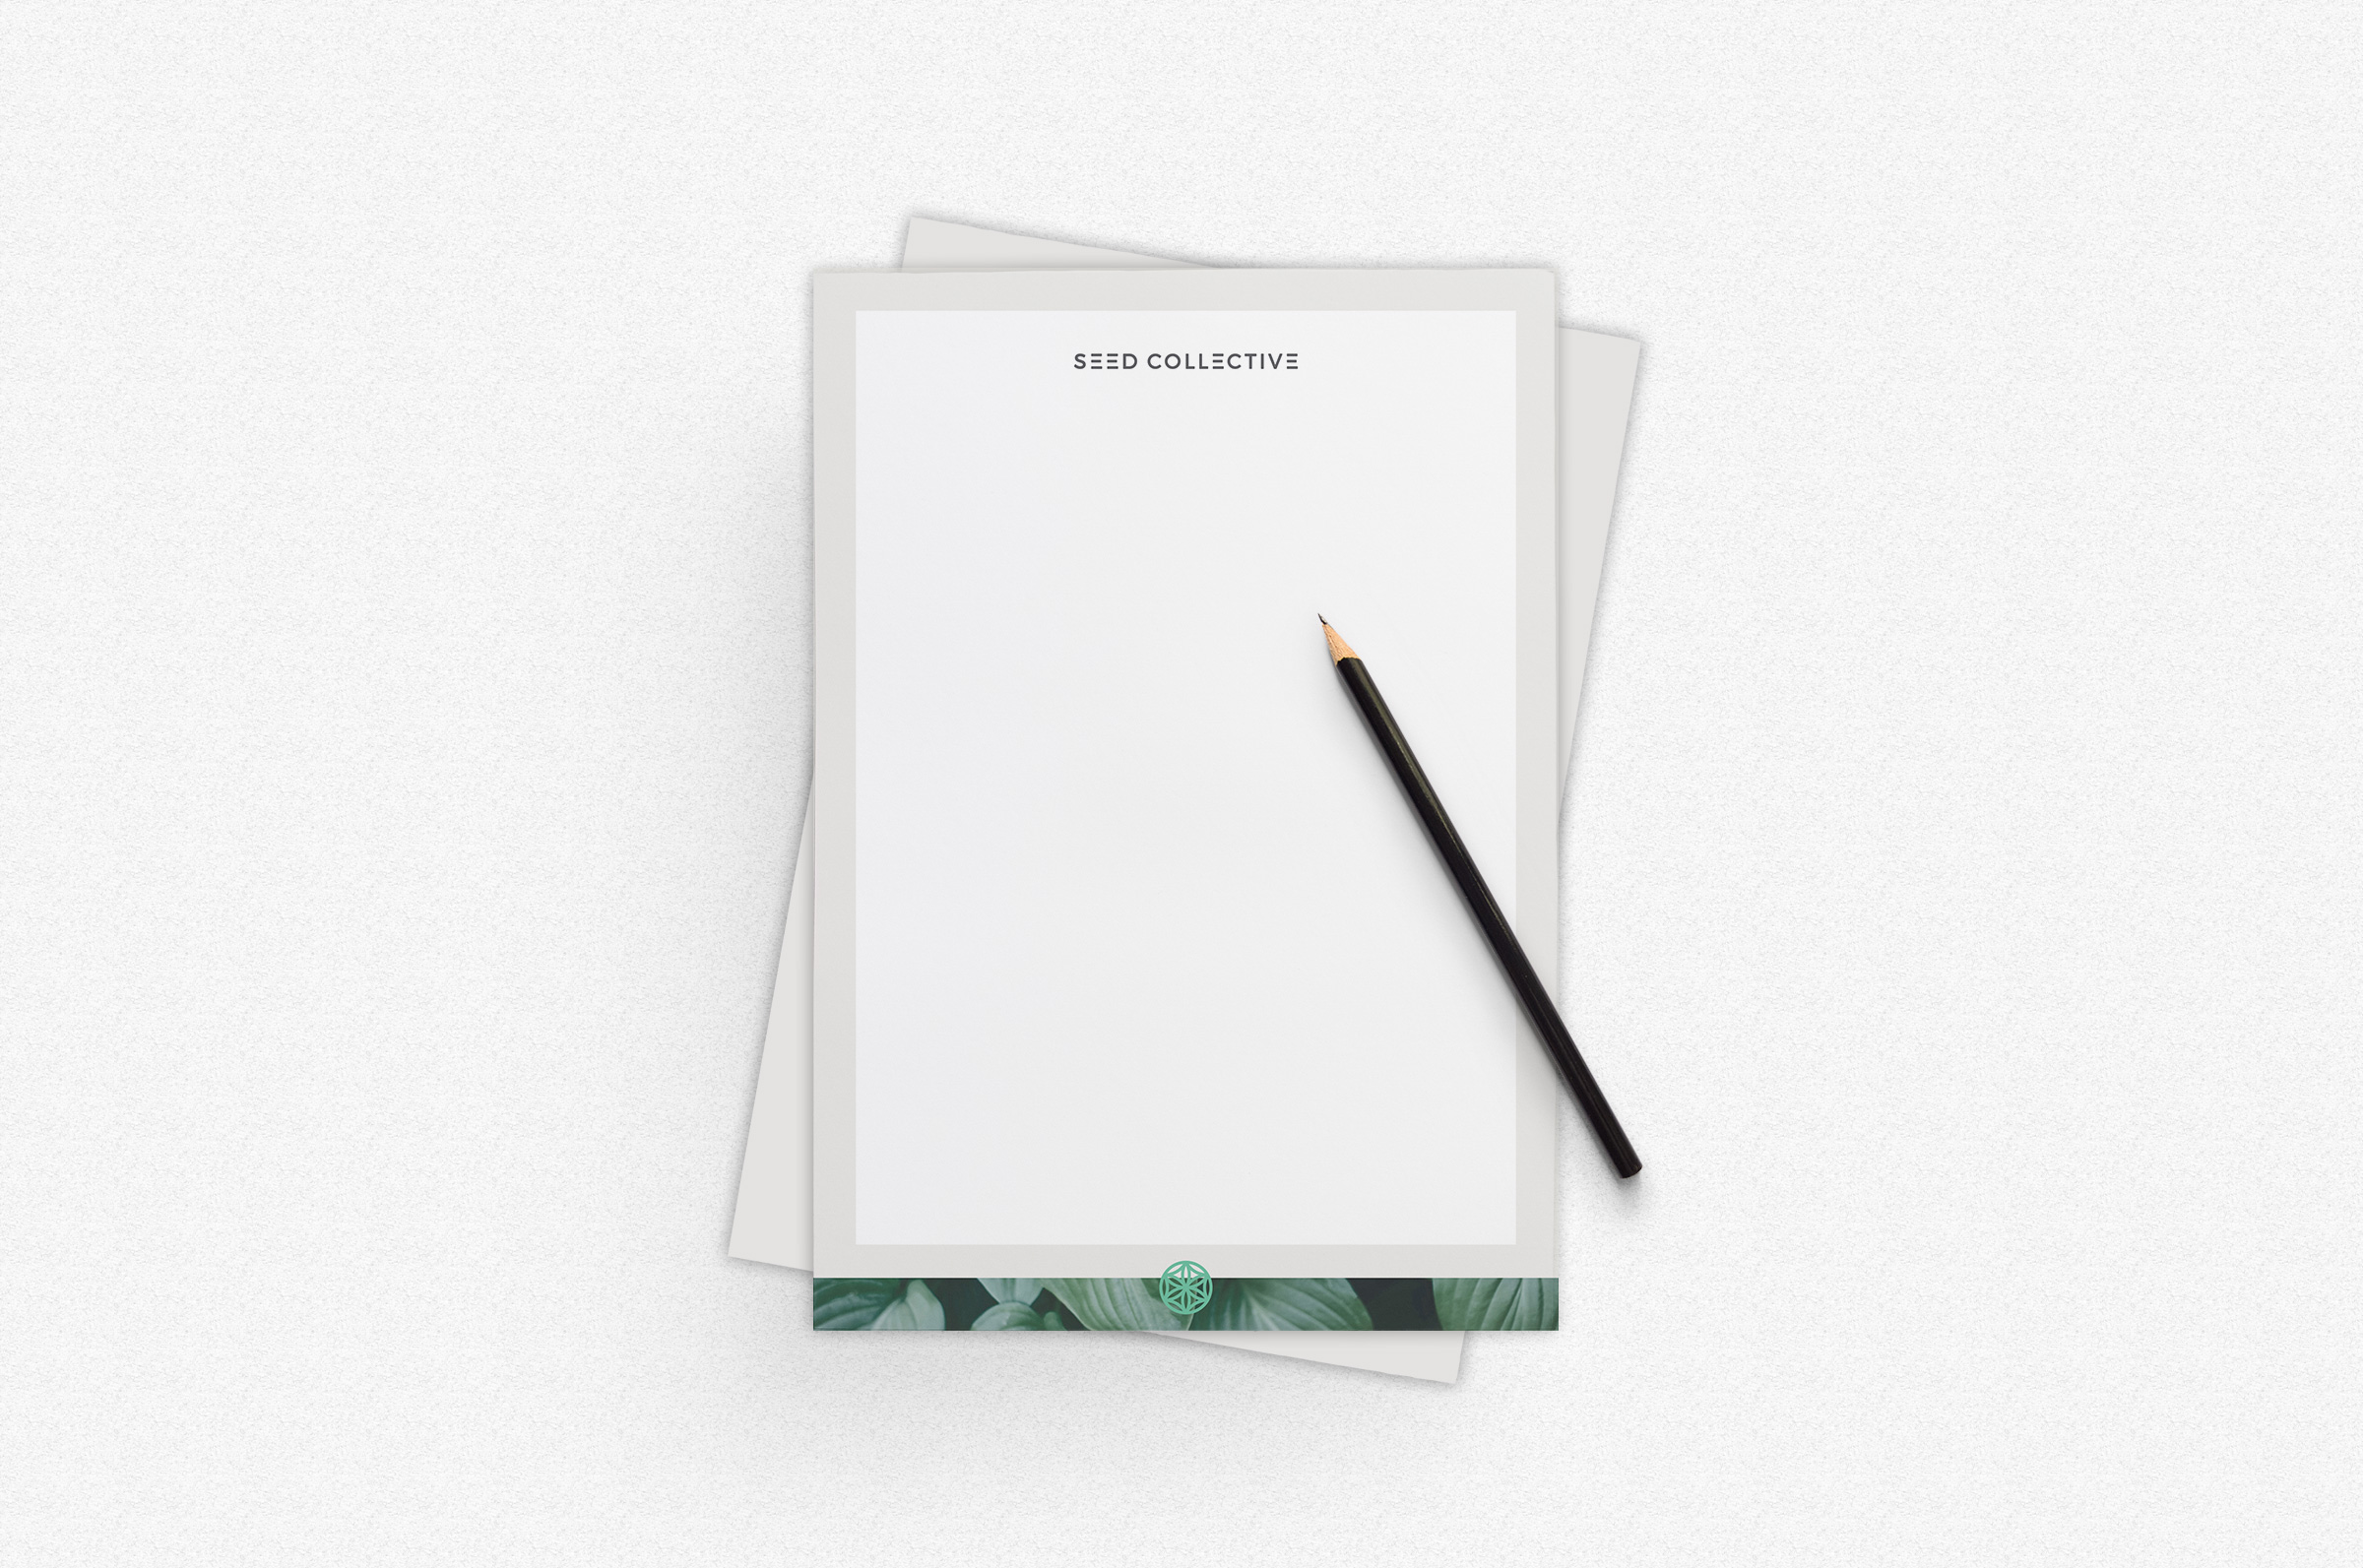 00_Seed_Collective_Letterhead_by_Foster.jpg